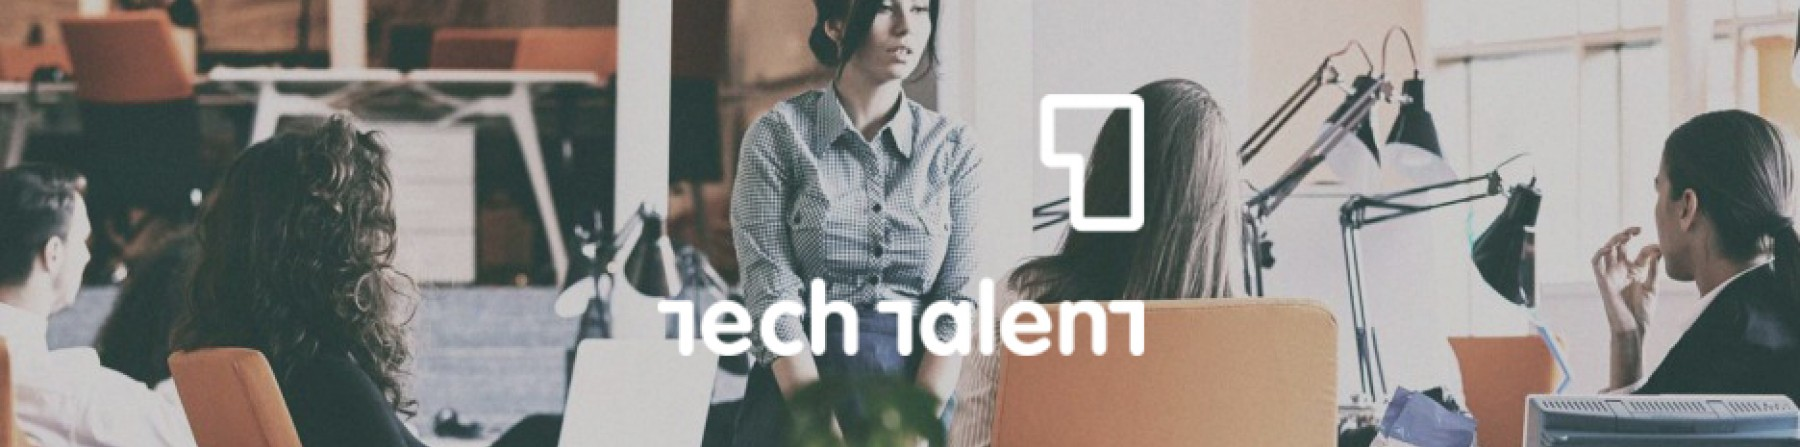 Tech Talent teaser